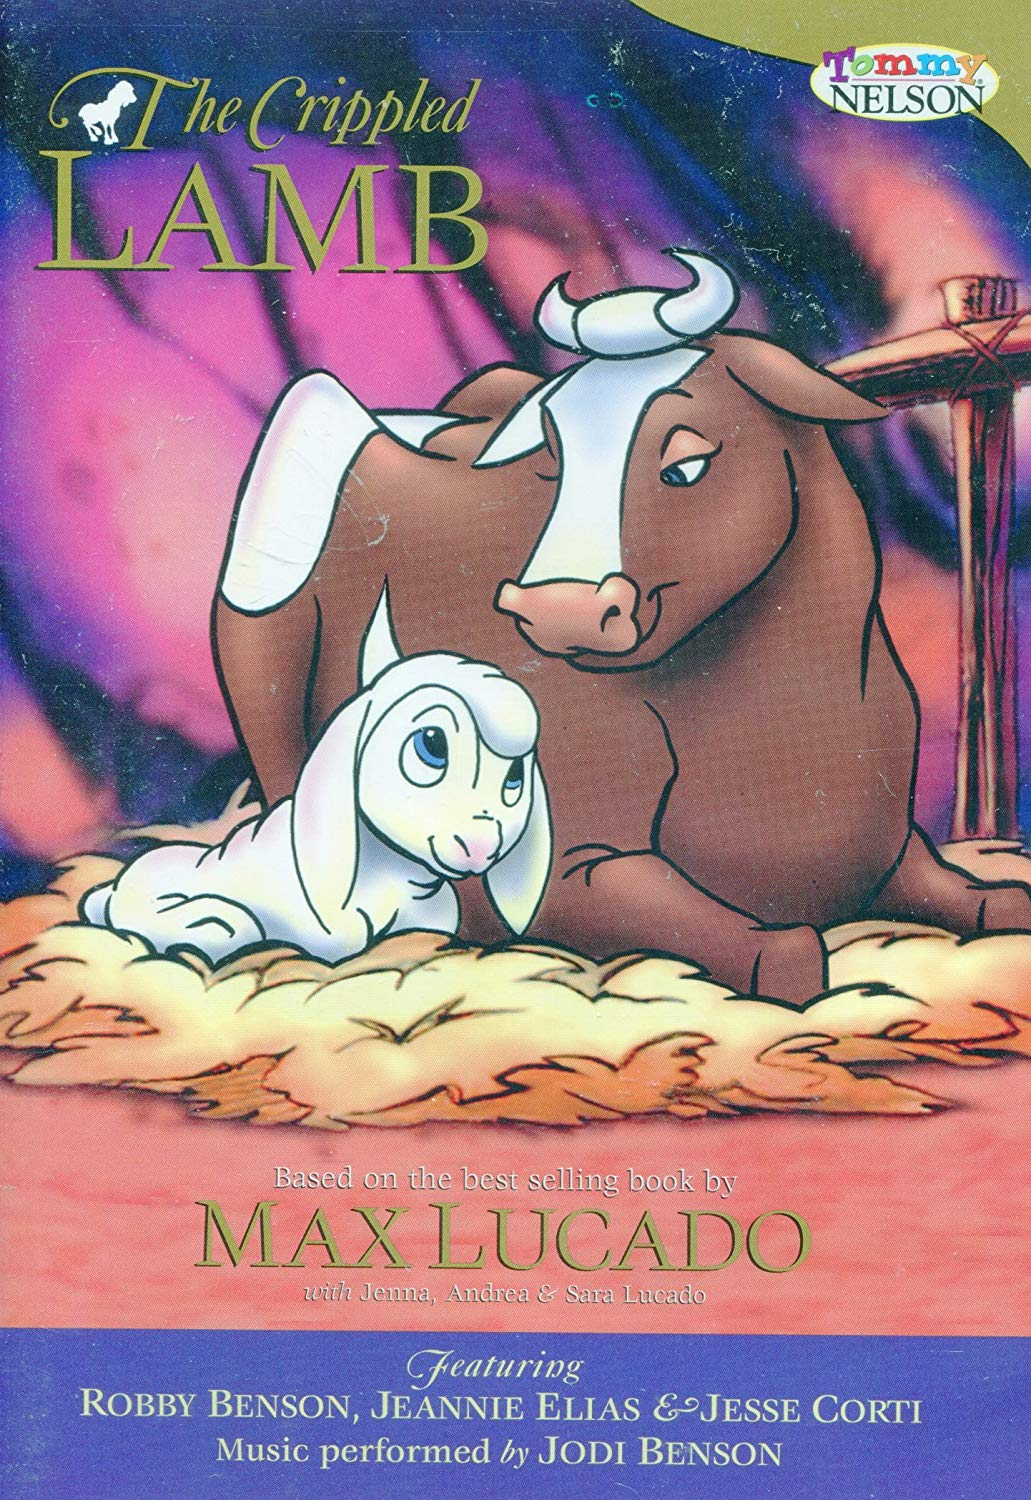 Max Lucado - The Crippled Lamb, Includes Bonus features